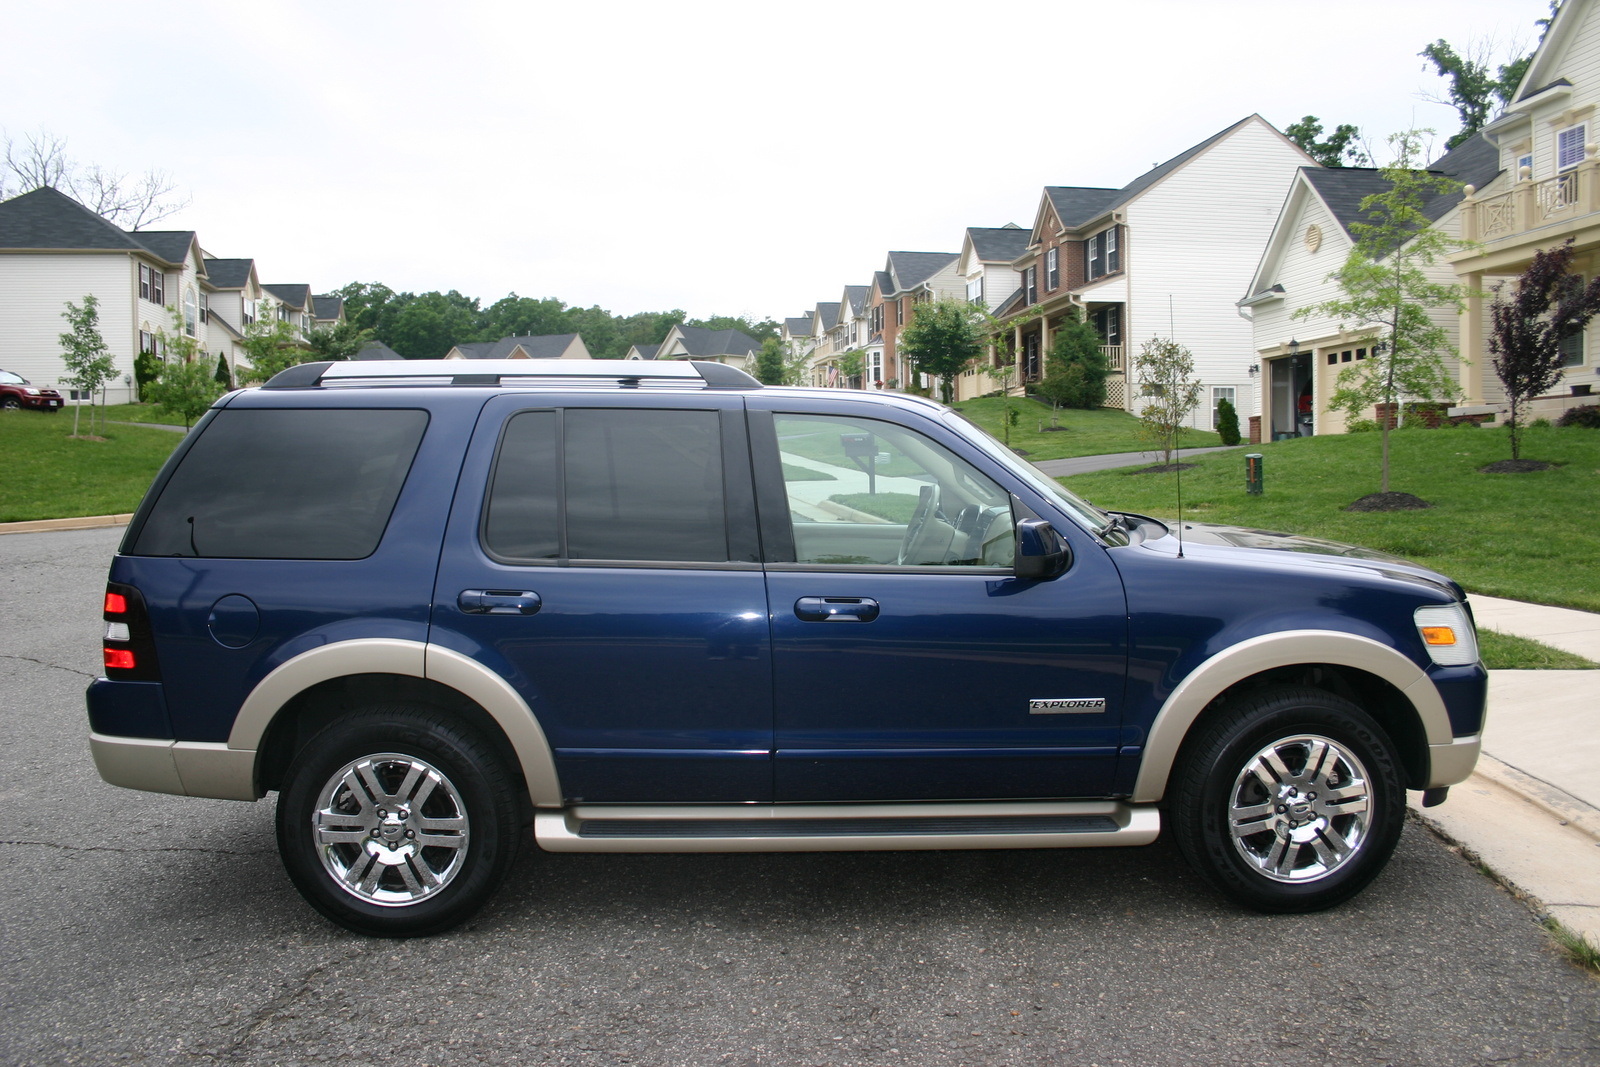 2006 Ford Explorer Pictures C3733 further How To Test Fuel Pressure Regulator Ford F150 also Ford Expedition 5 4 2005 Specs And Images additionally Ford also Messi Wallpaper Hd. on ford expedition 4 6 2001 specs and images